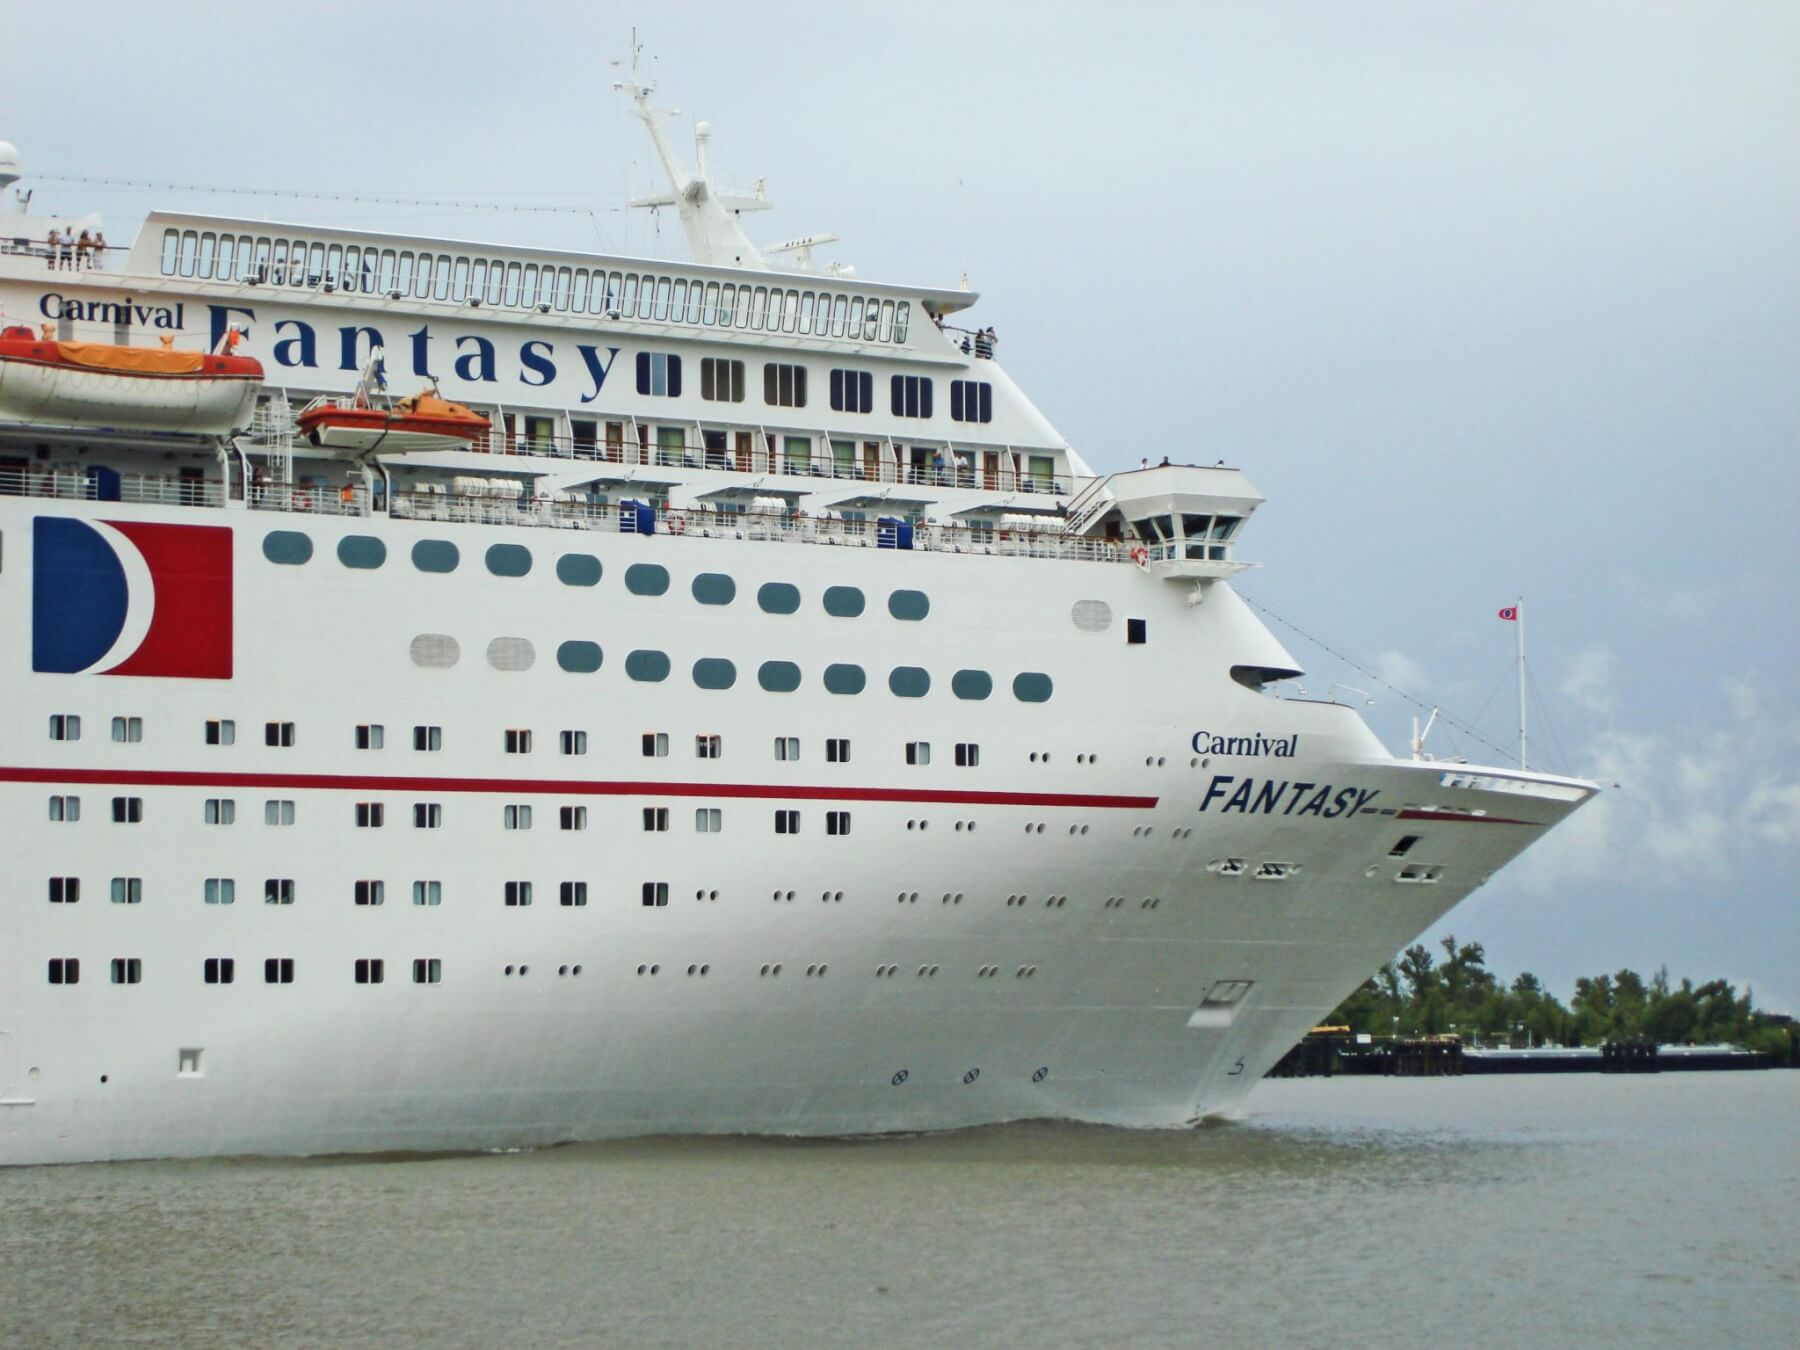 Priest accused of sexual abuse on Carnival cruise